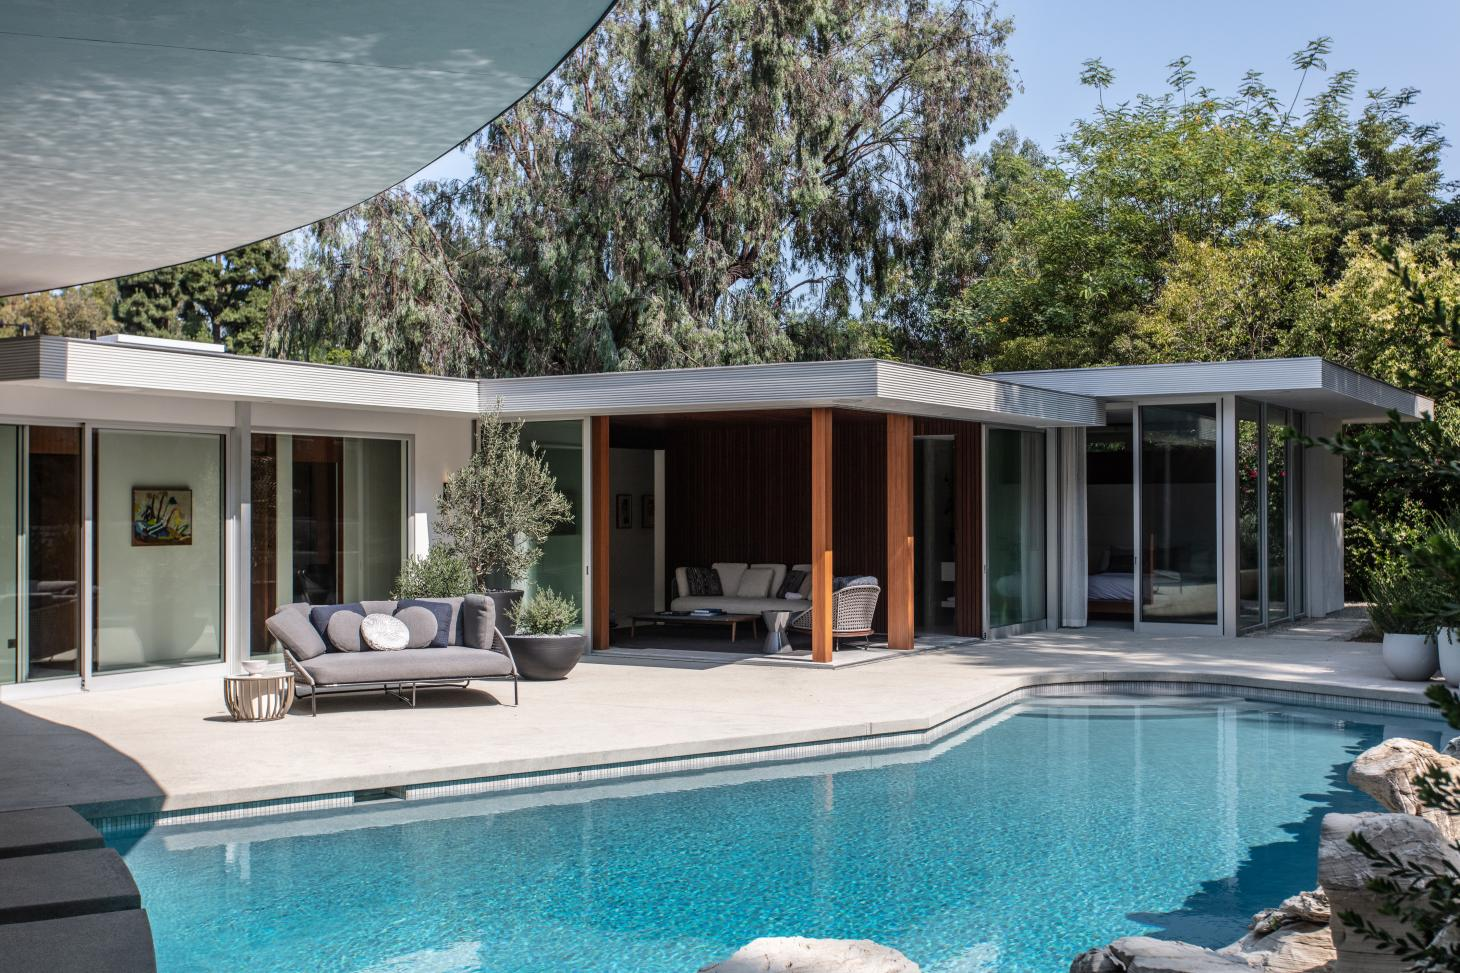 exterior with pool of cove way, a midcentury home restored by Sophie goineau